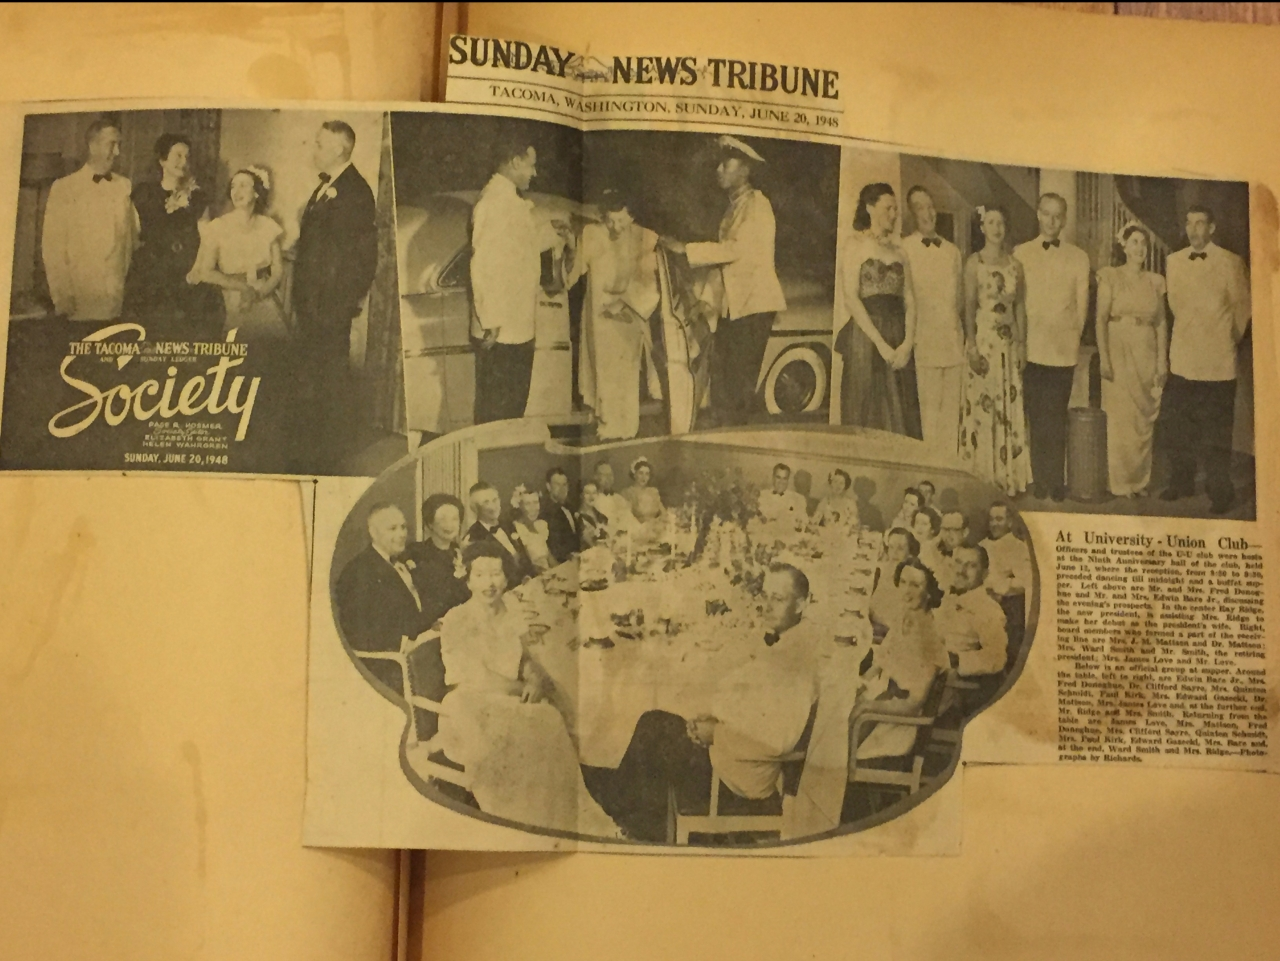 It happened in June at the Union Club Anniversary Ball News Tribune 1948